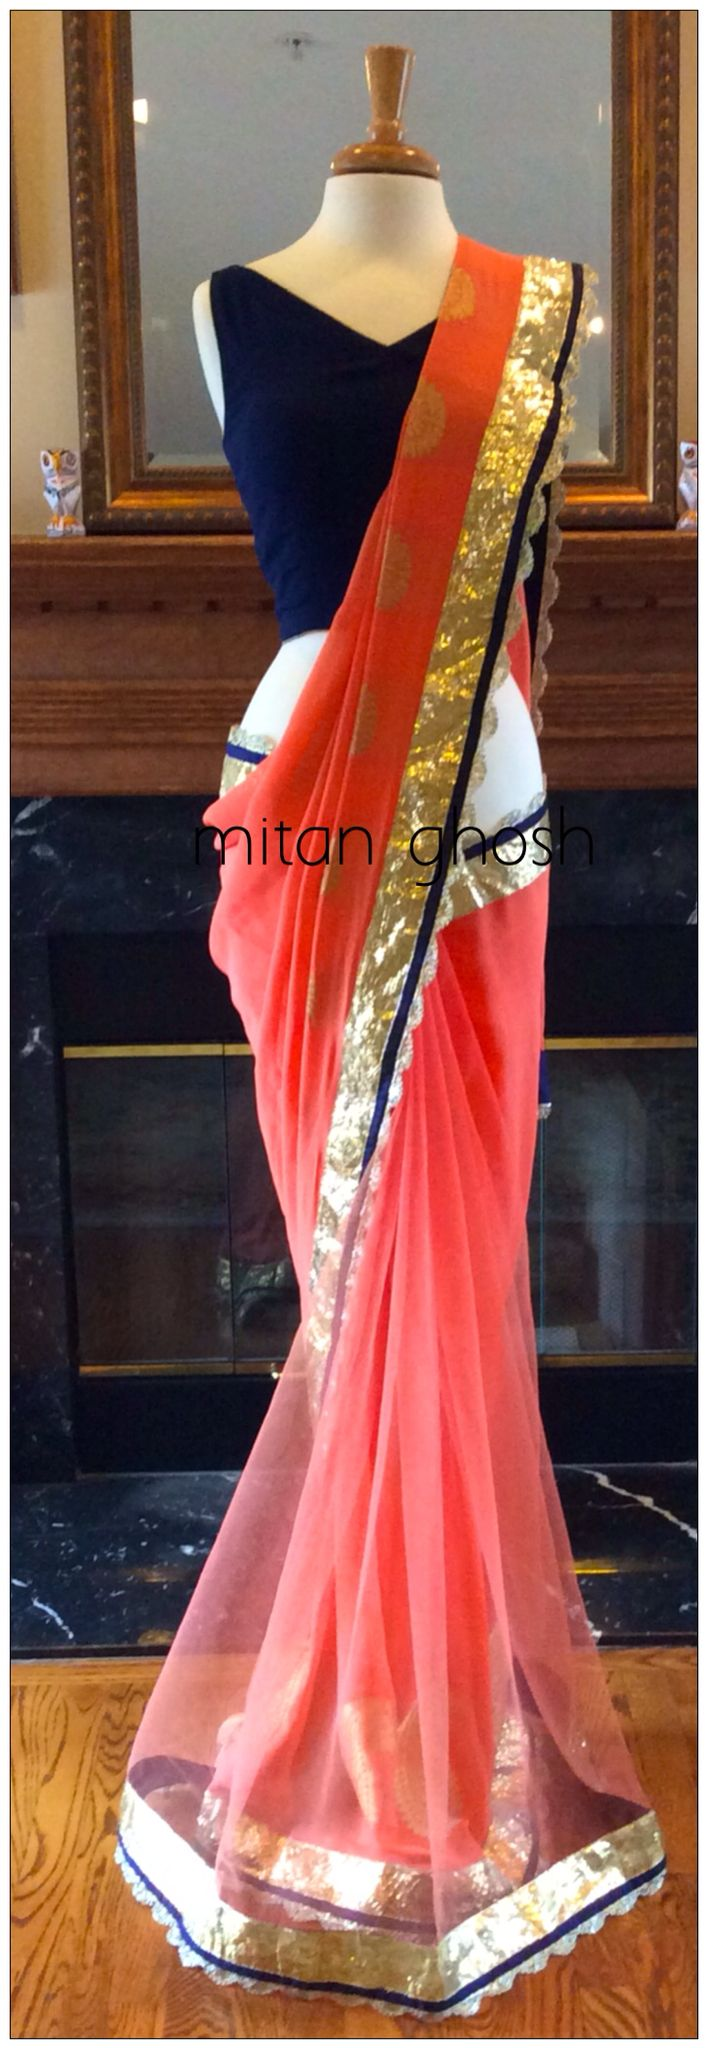 132 Best Images About Sarees Redefined On Pinterest Saree White Saree And